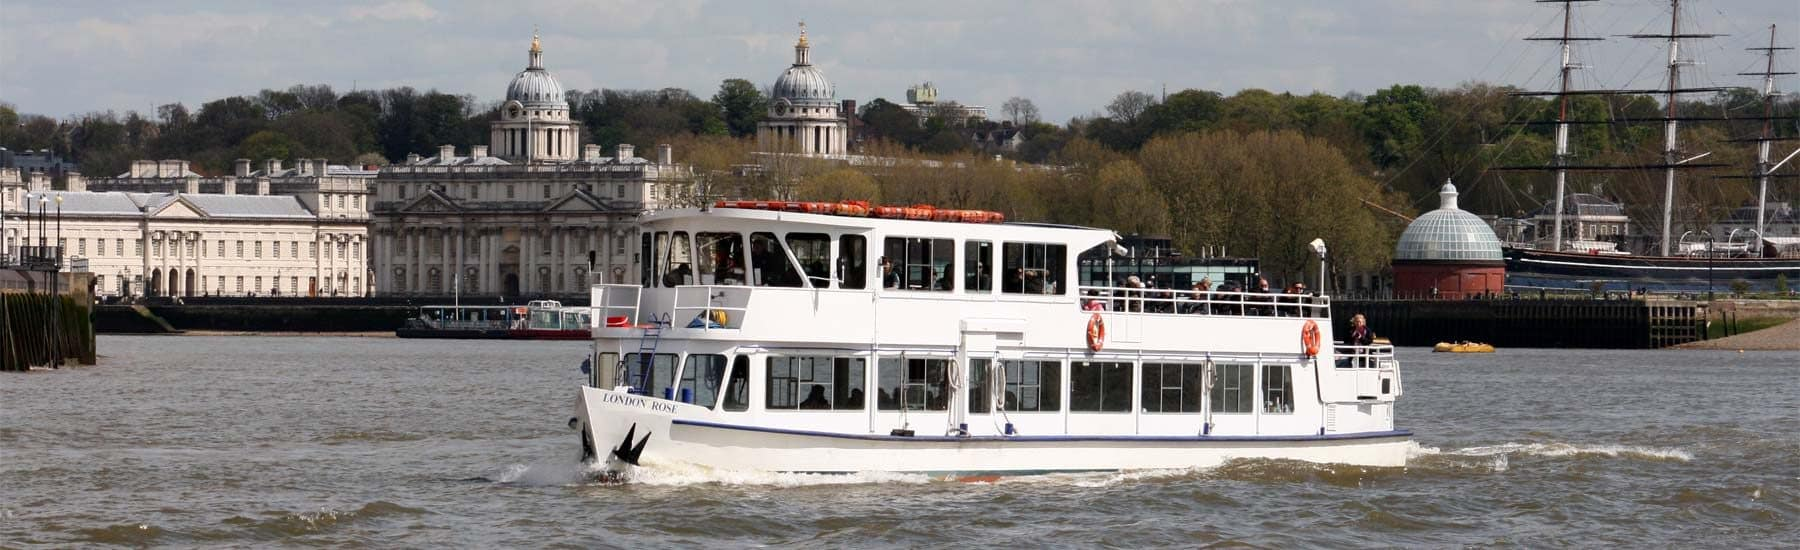 Our Fleet, M.V London Rose passing the Royal Borough of Greenwich